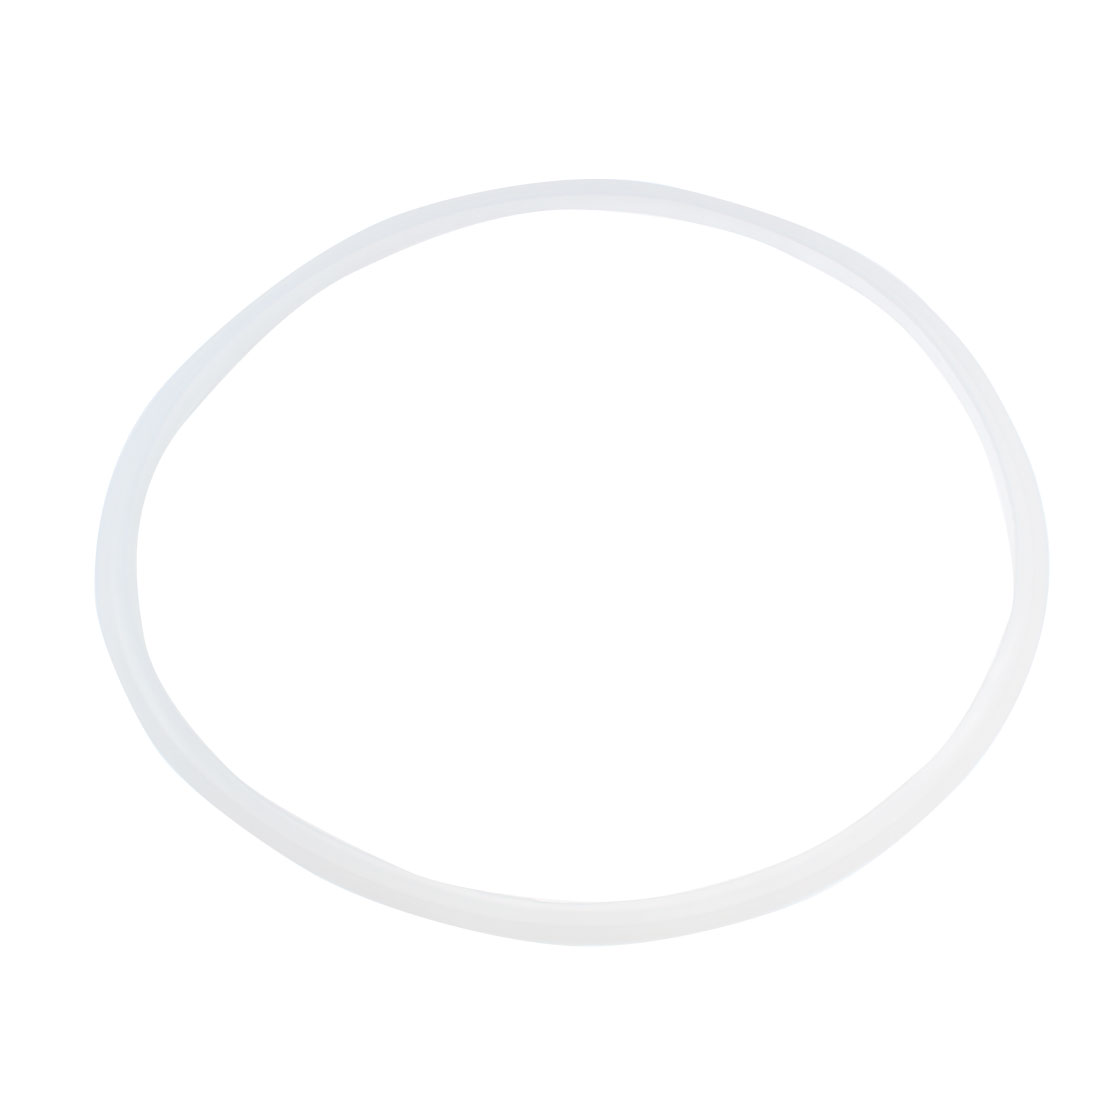 2 Pcs 26cm Replacement Rubber Sealing Gasket Ring Clear White for Pressure Cooker